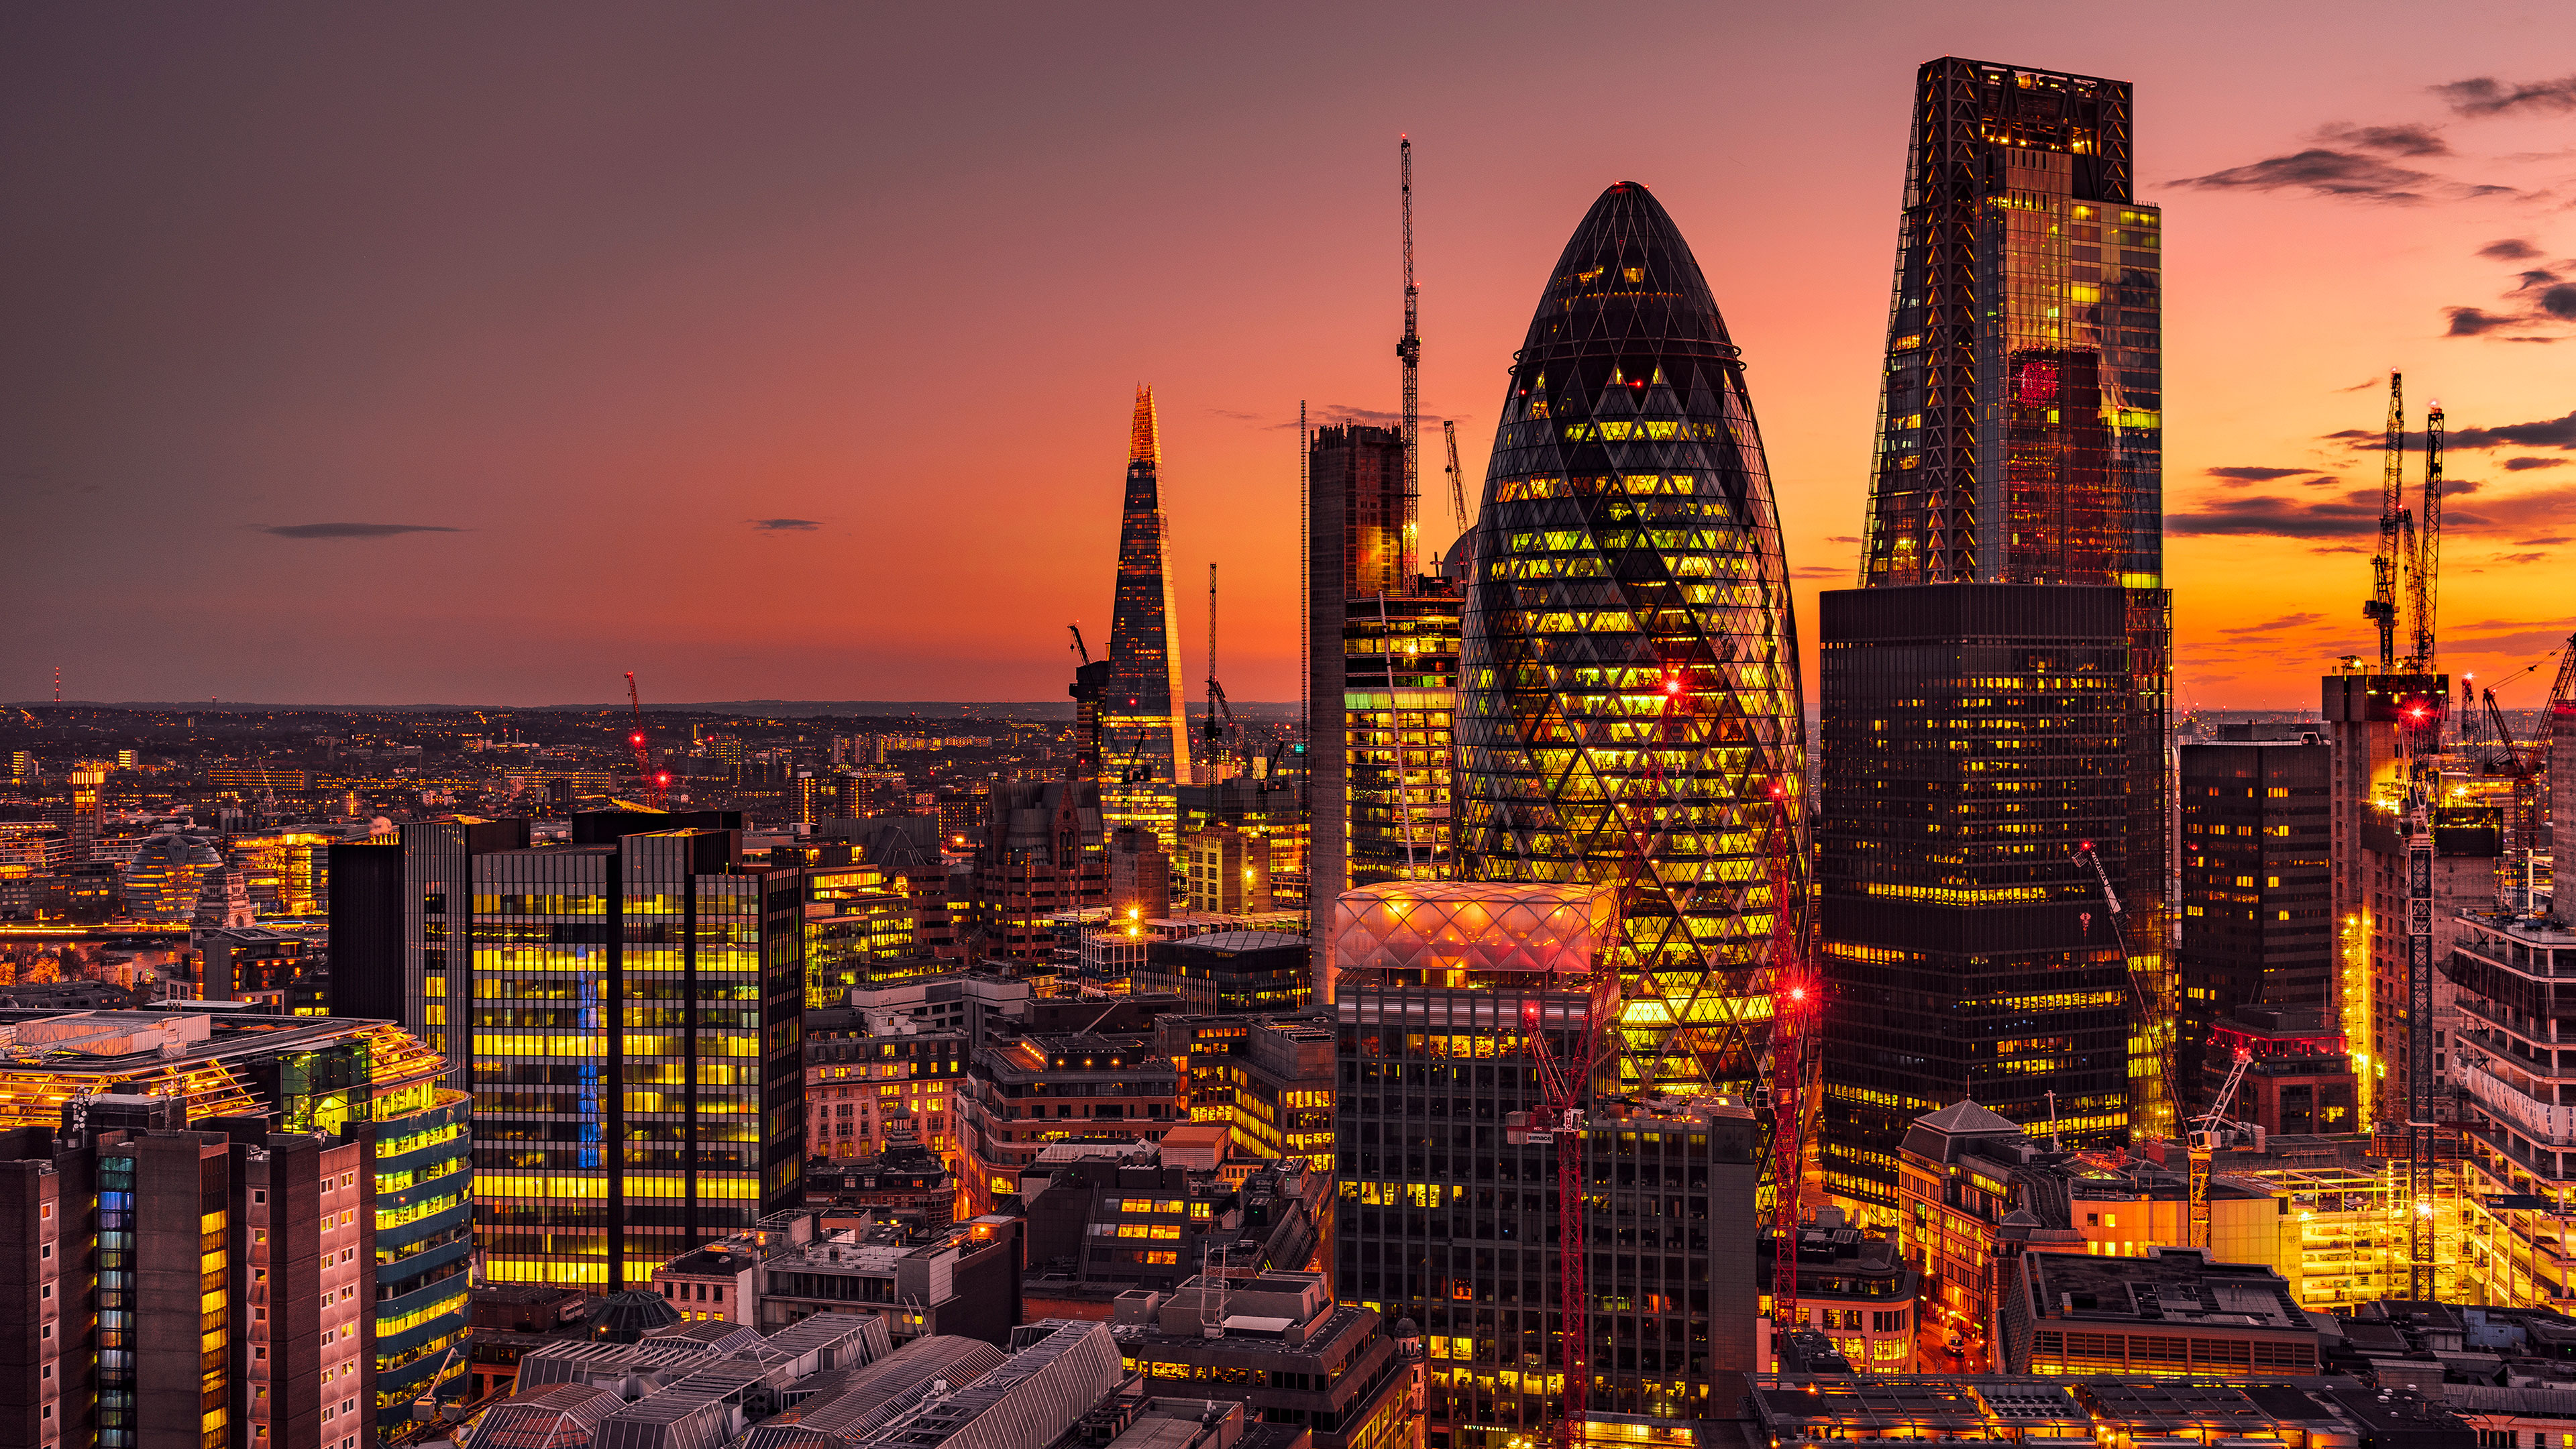 London lights 4k hd world 4k wallpapers images for City of la 457